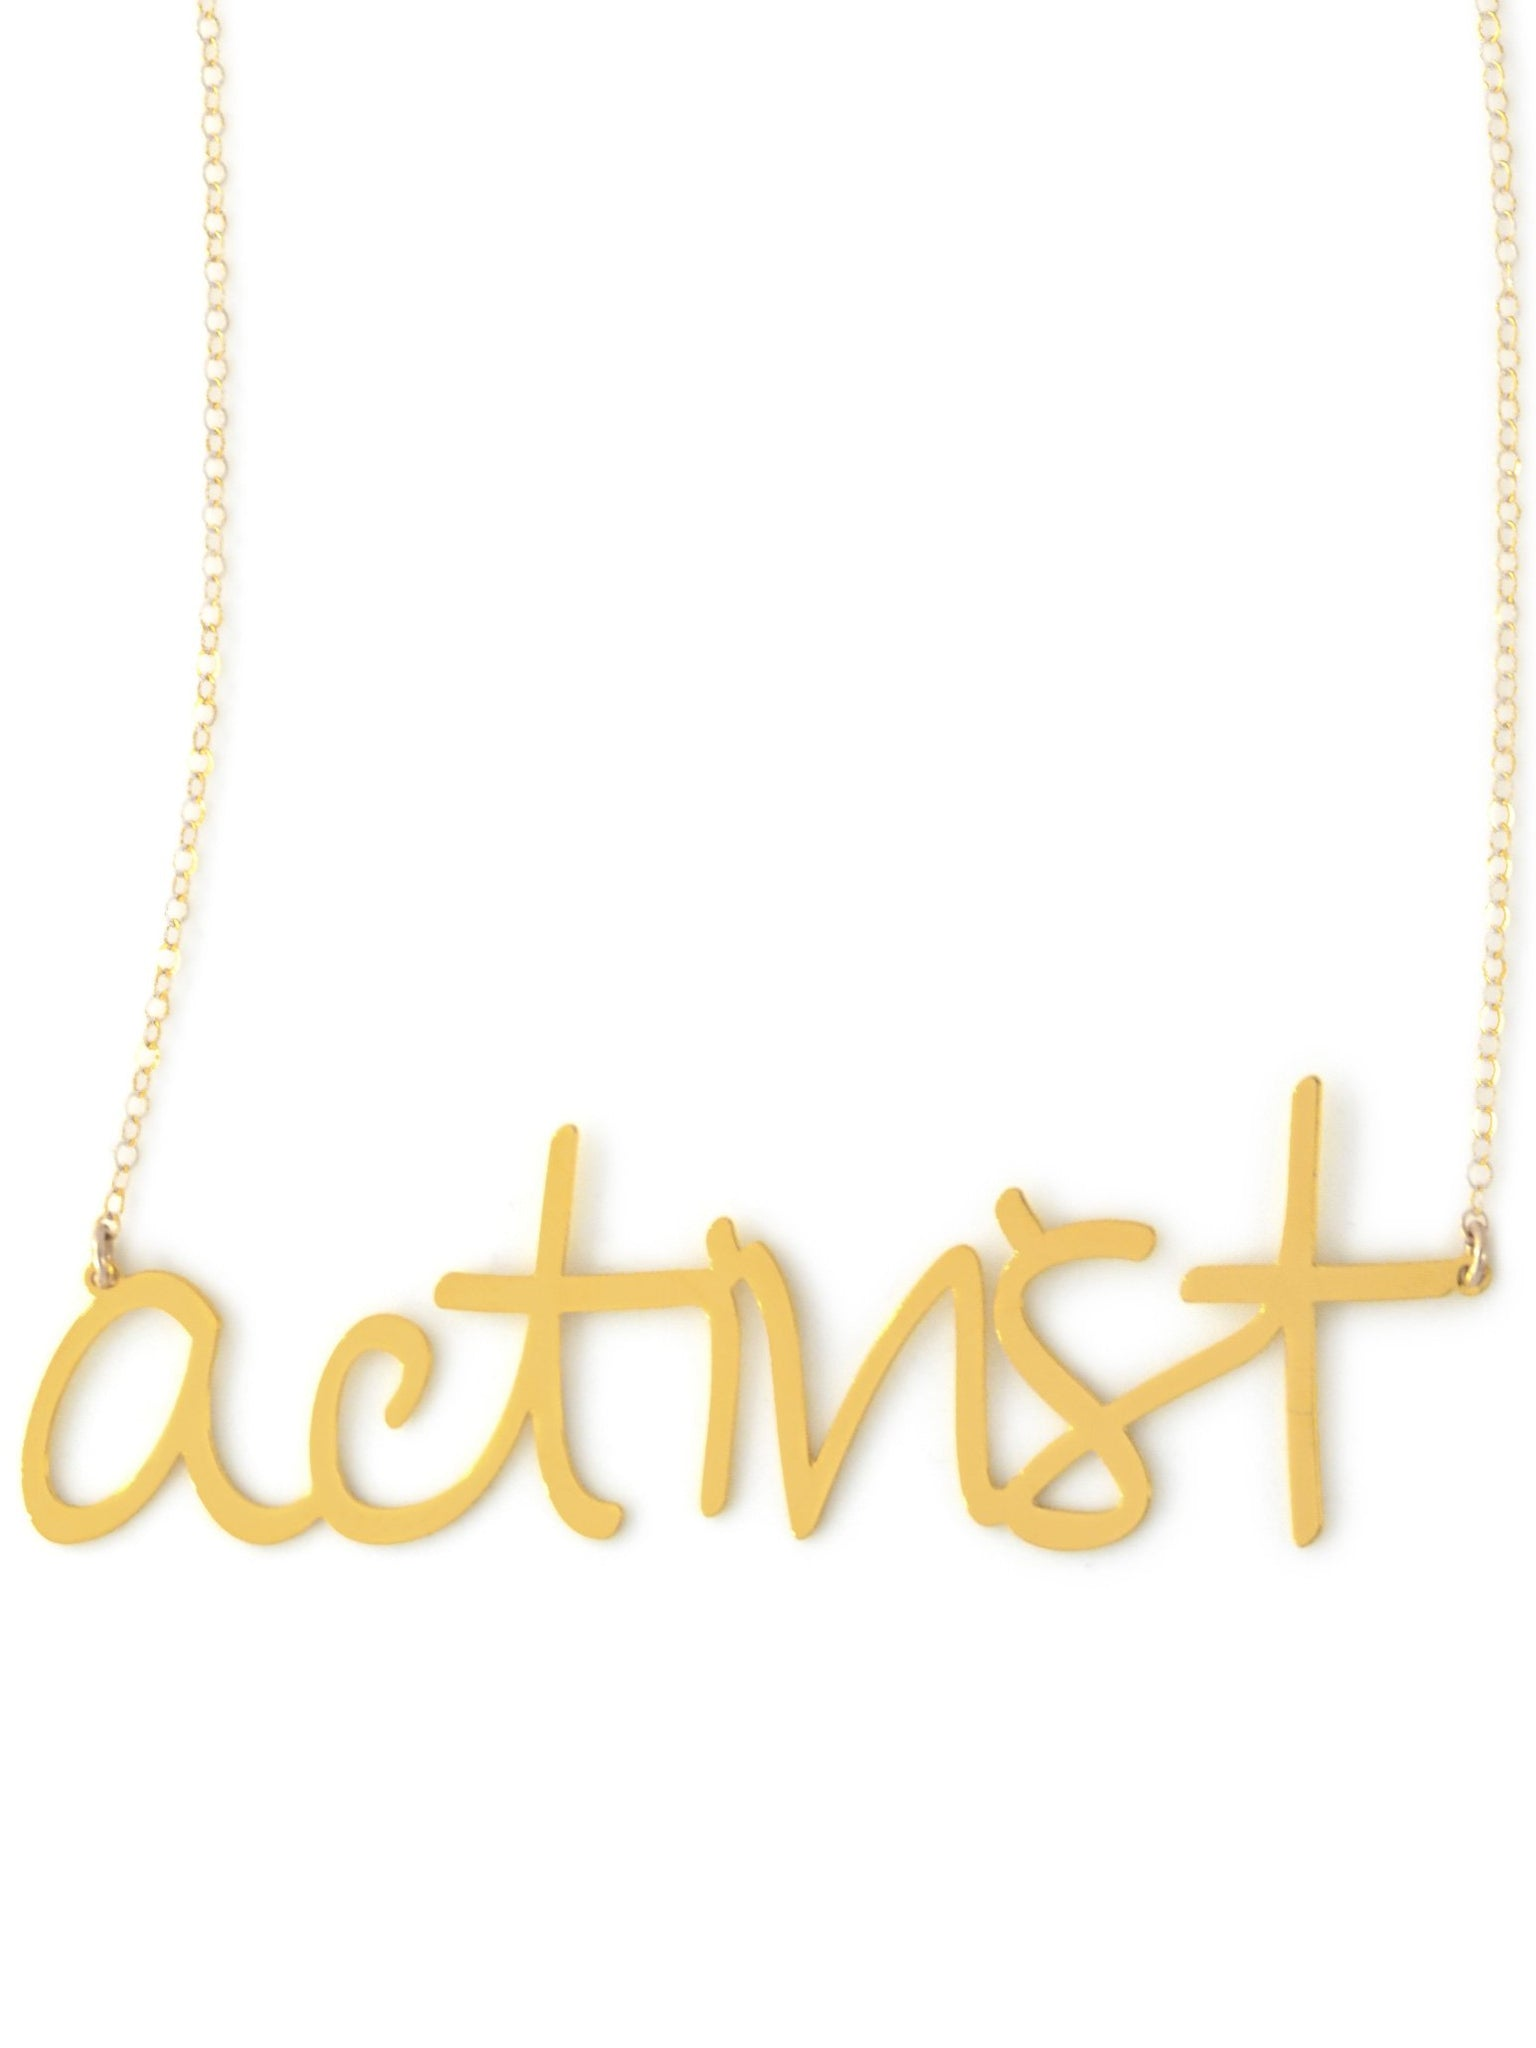 Activist - XX {{ product.type }} - Brevity Jewelry - Made in USA - Affordable gold and silver necklaces